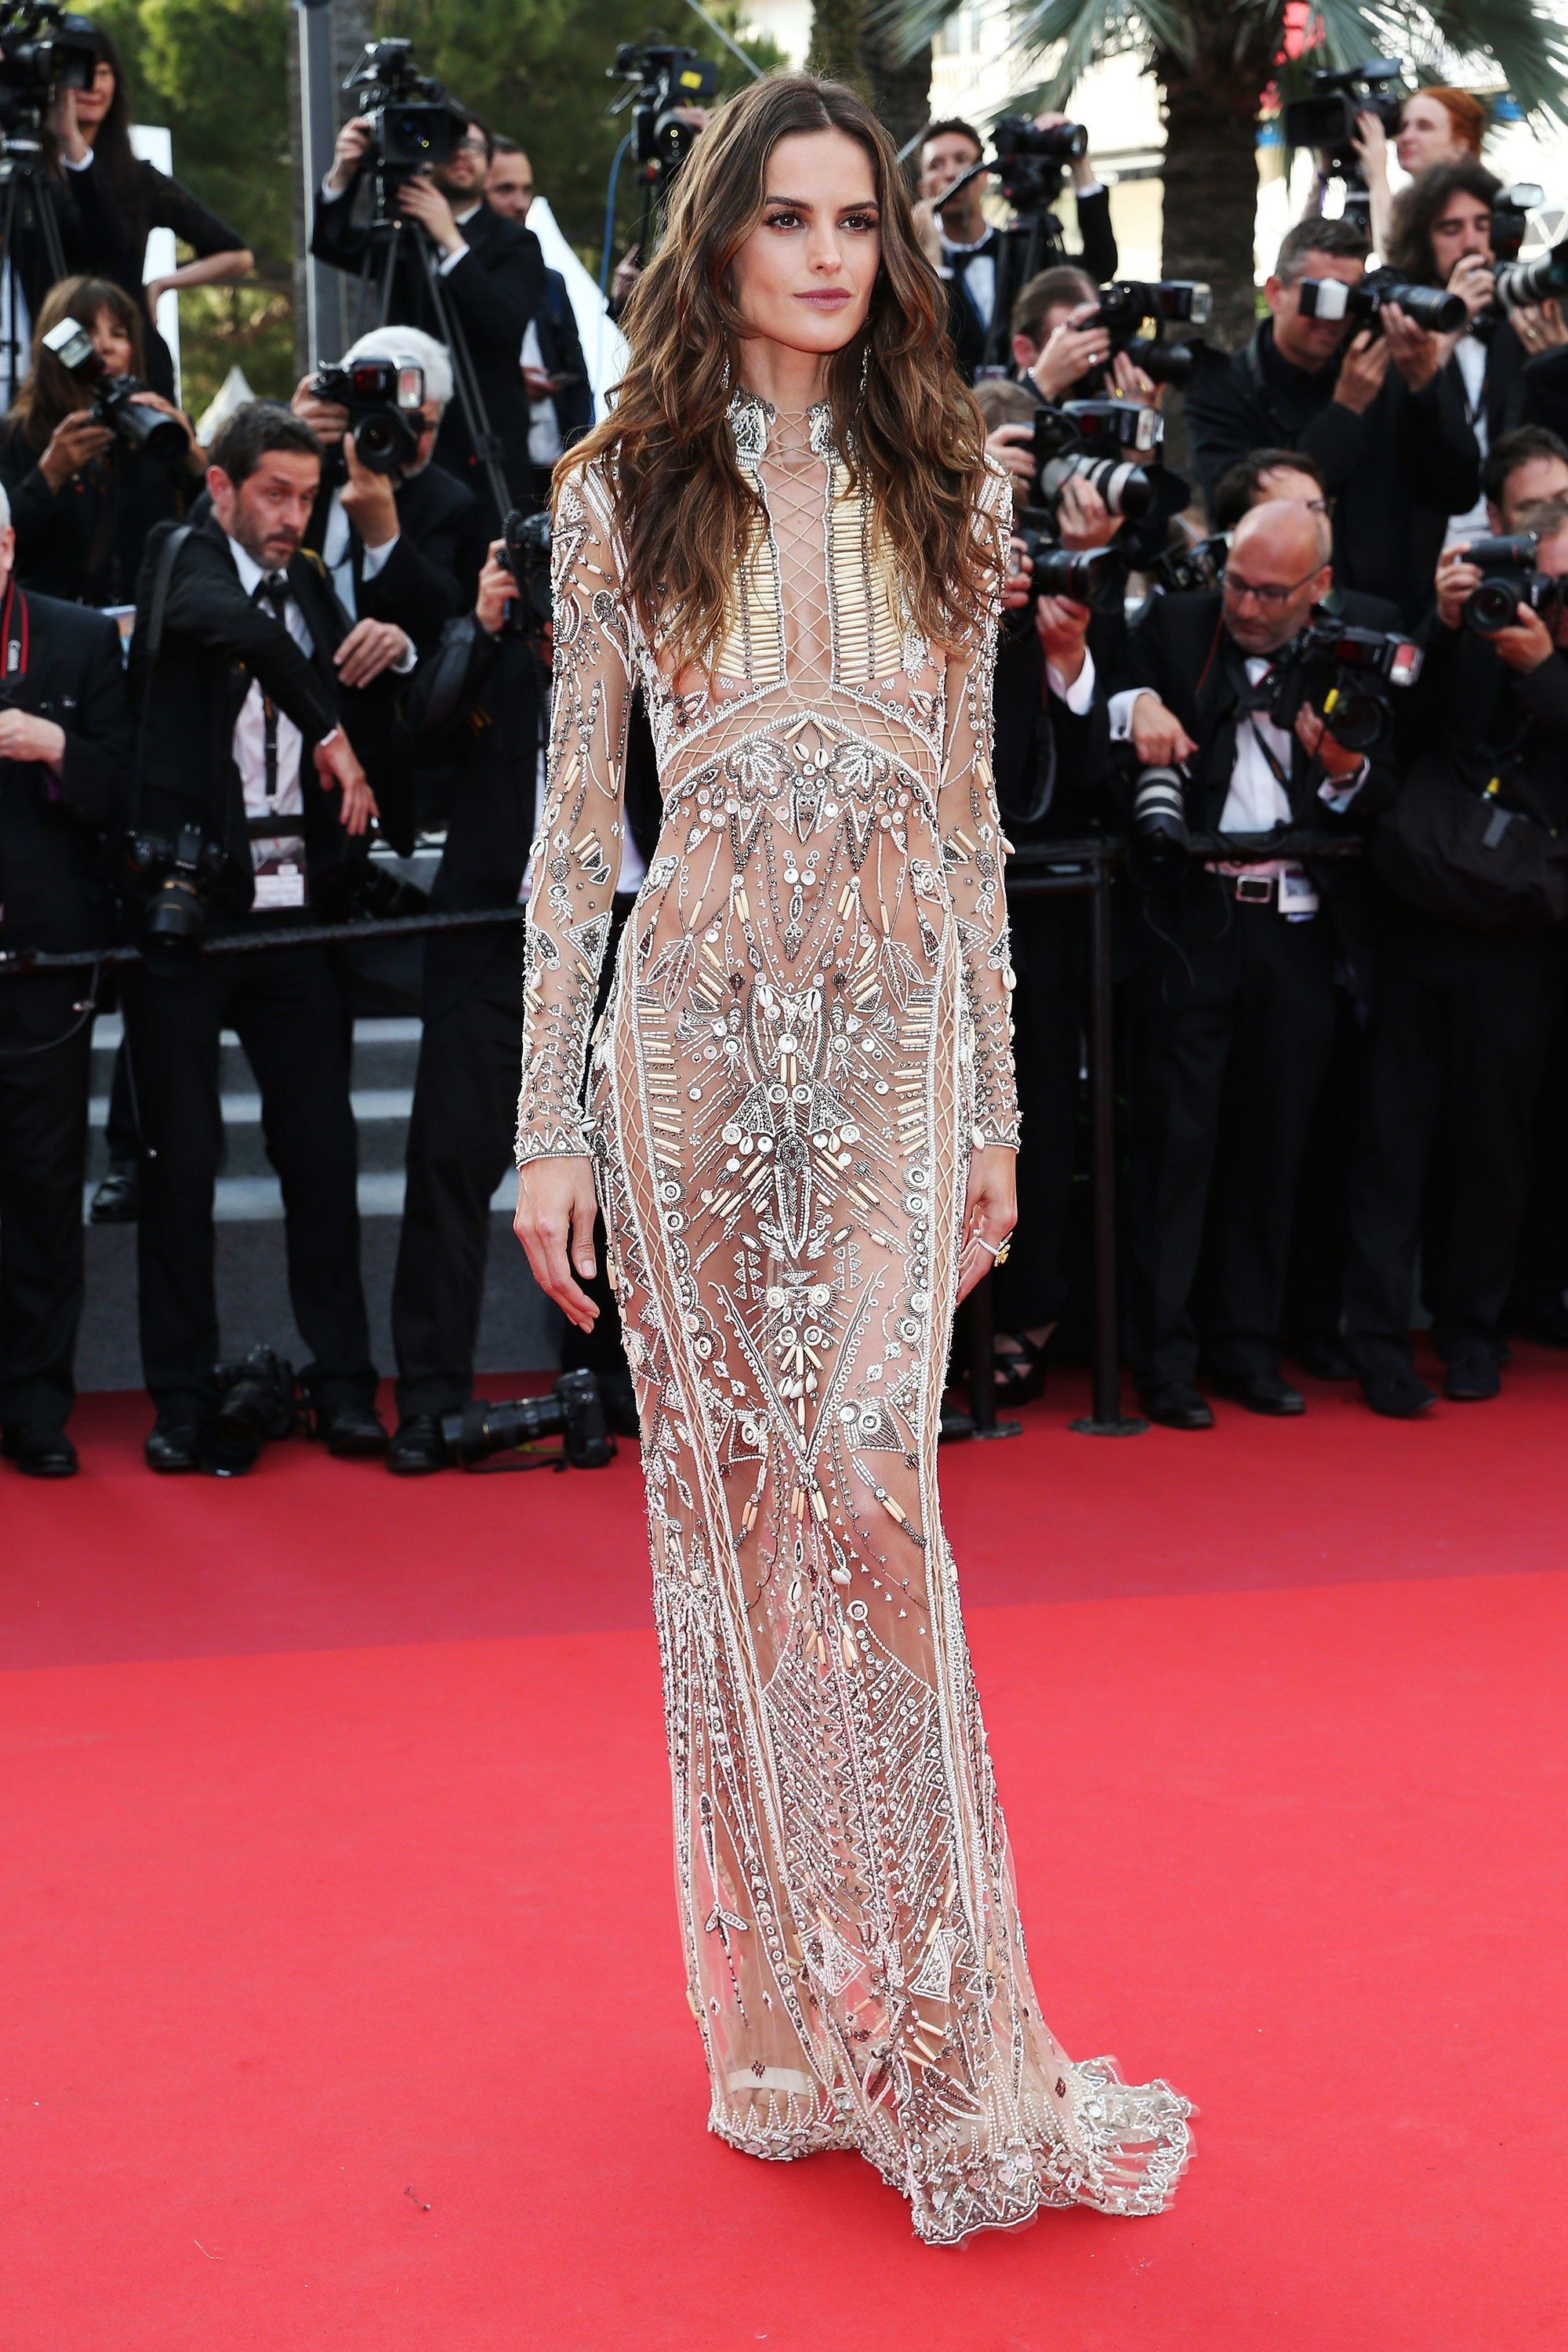 Image Result For Irina Shayk Hits Her First Post Pregnancy Red Carpet At The Cannes Film Festival